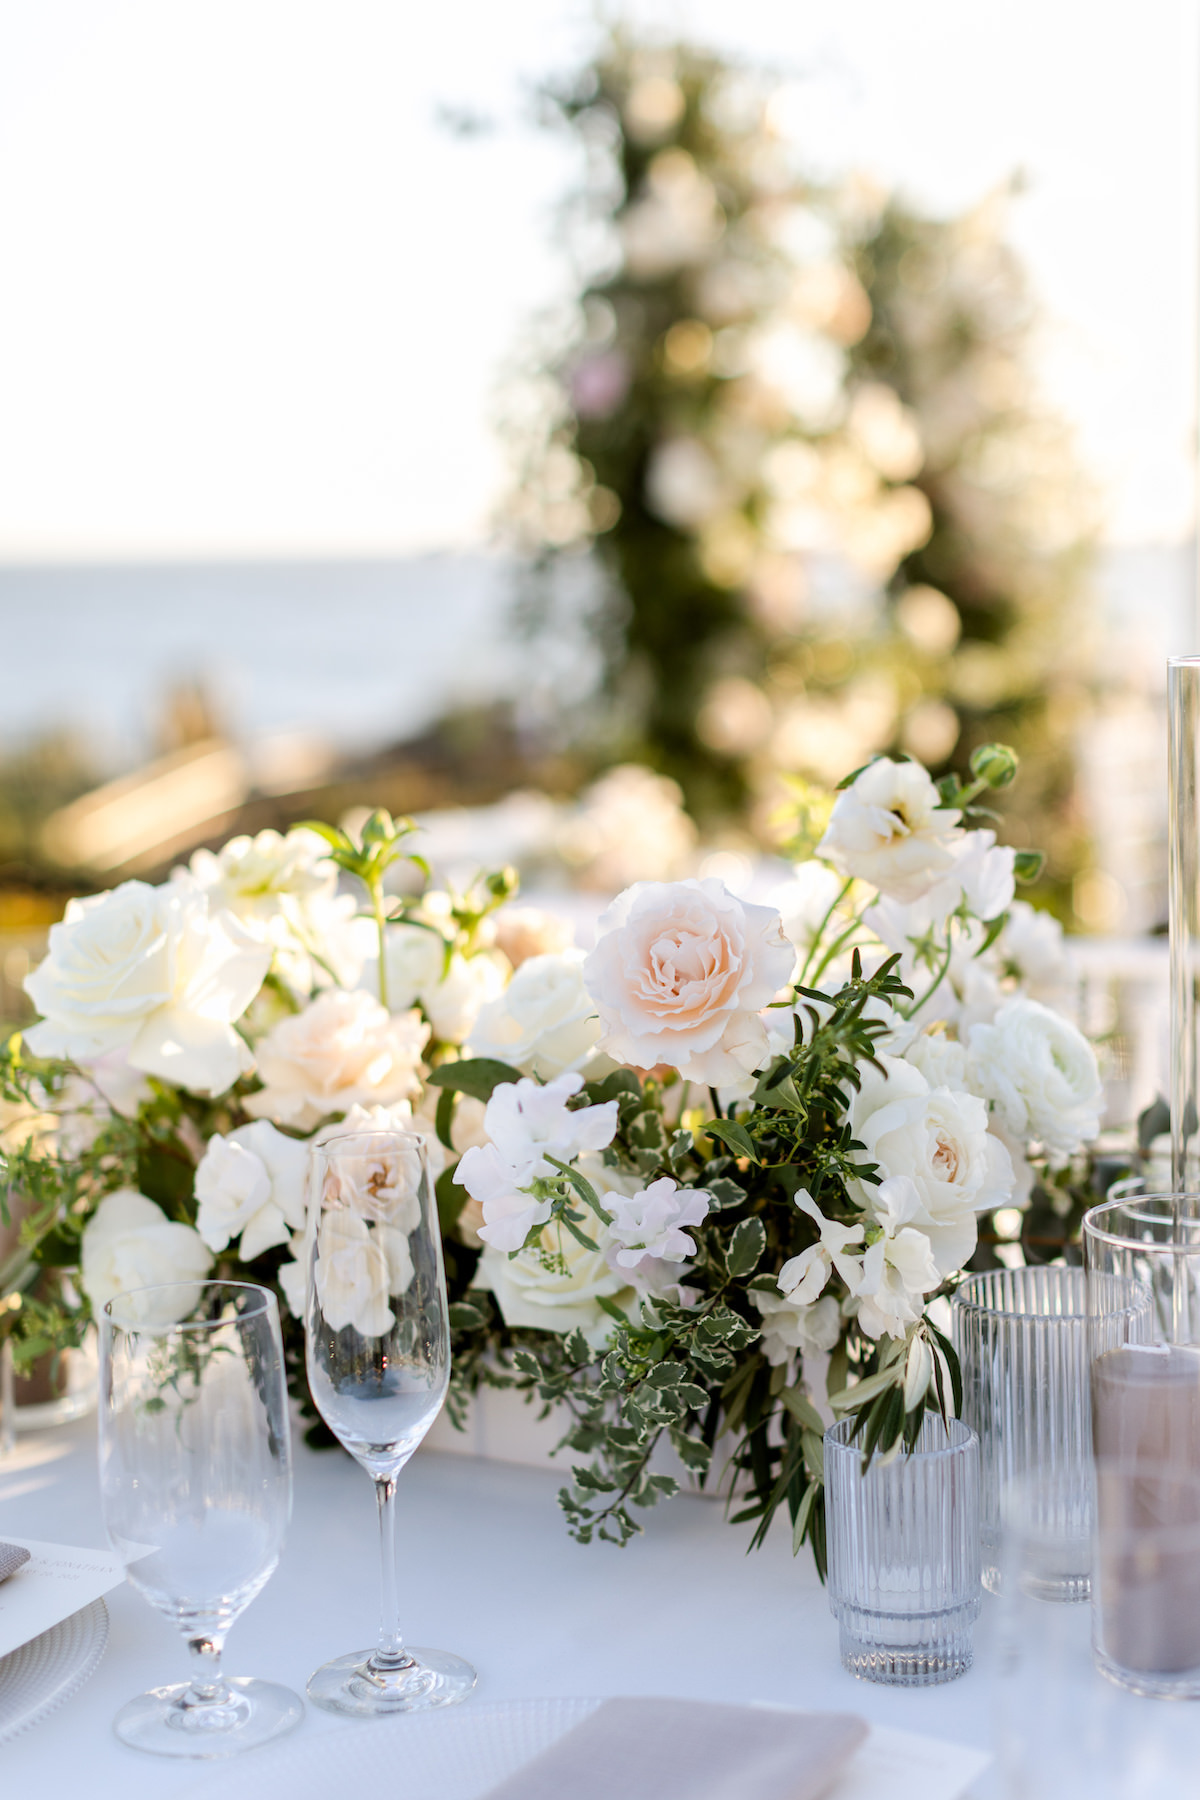 Romantic spring wedding centerpiece with neutral colors - Holly Sigafoos Photo